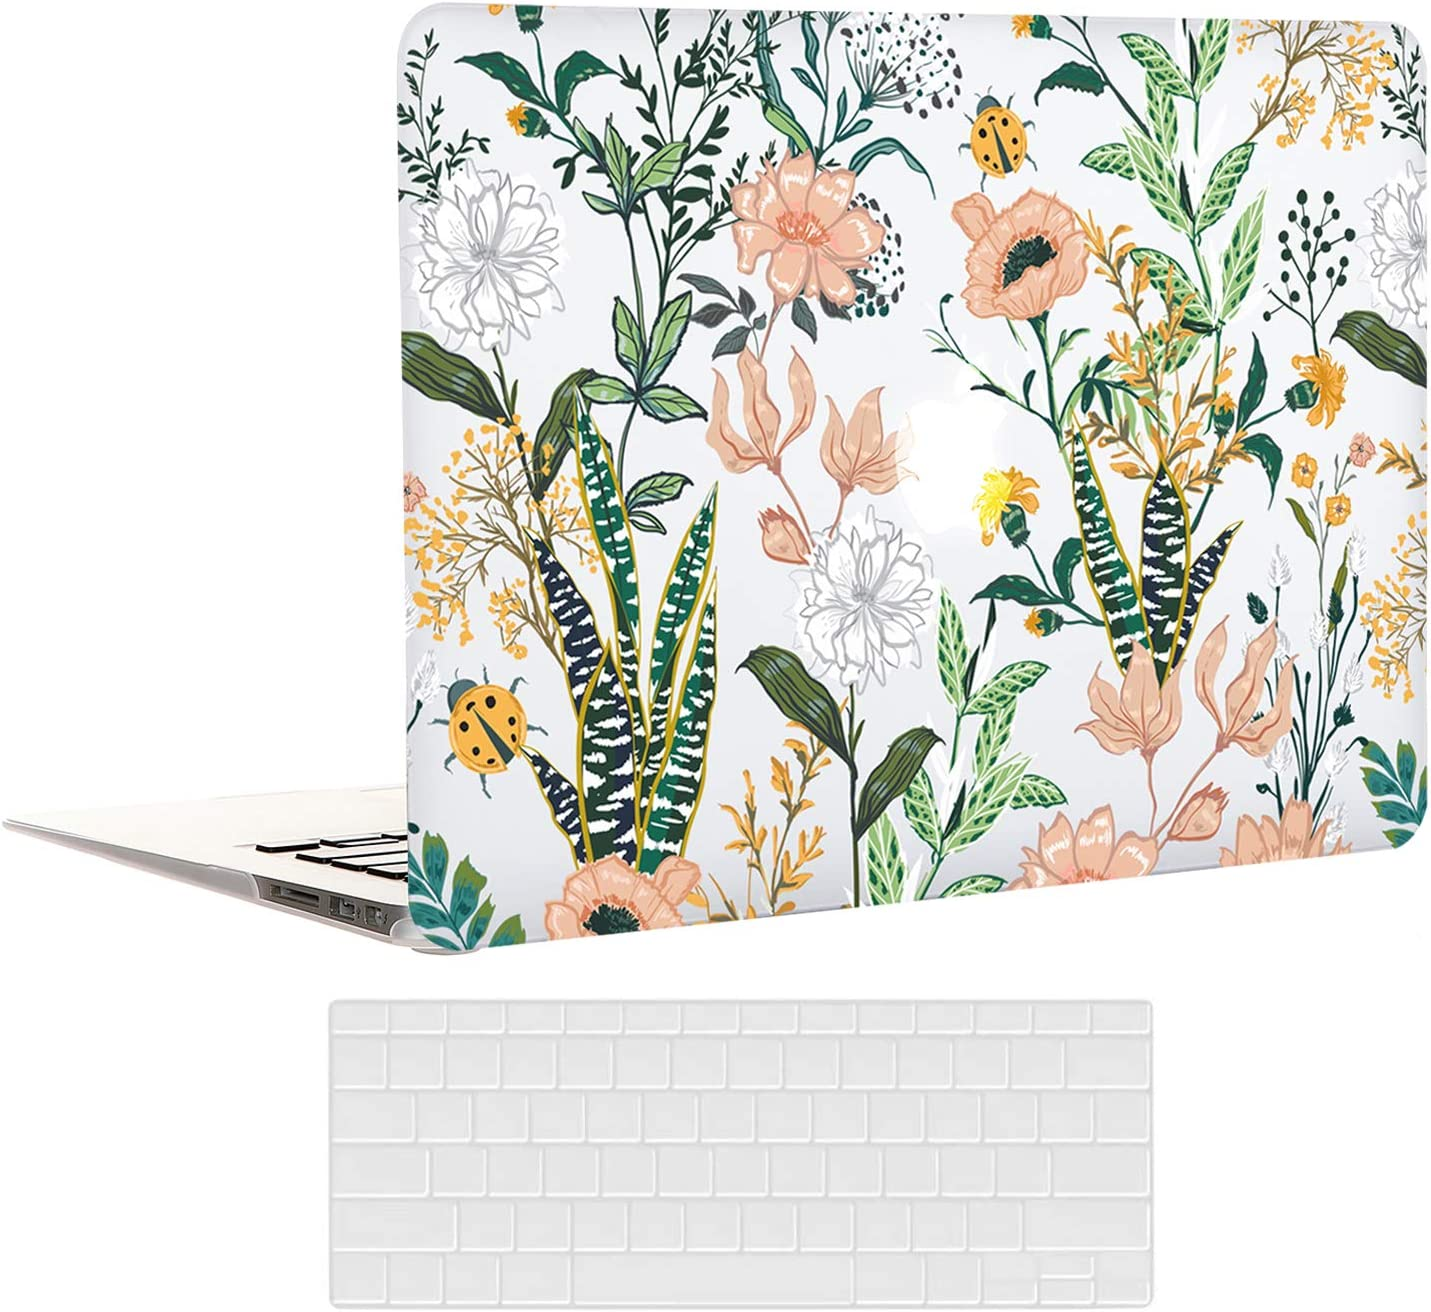 EkuaBot Floral Flower MacBook Pro 13 inch Case & Transparent Keyboard Cover(A2289/A2251, 2020 Release), Matt Clear Hard Shell Case Only Compatible Newest MacBook Pro 13.3